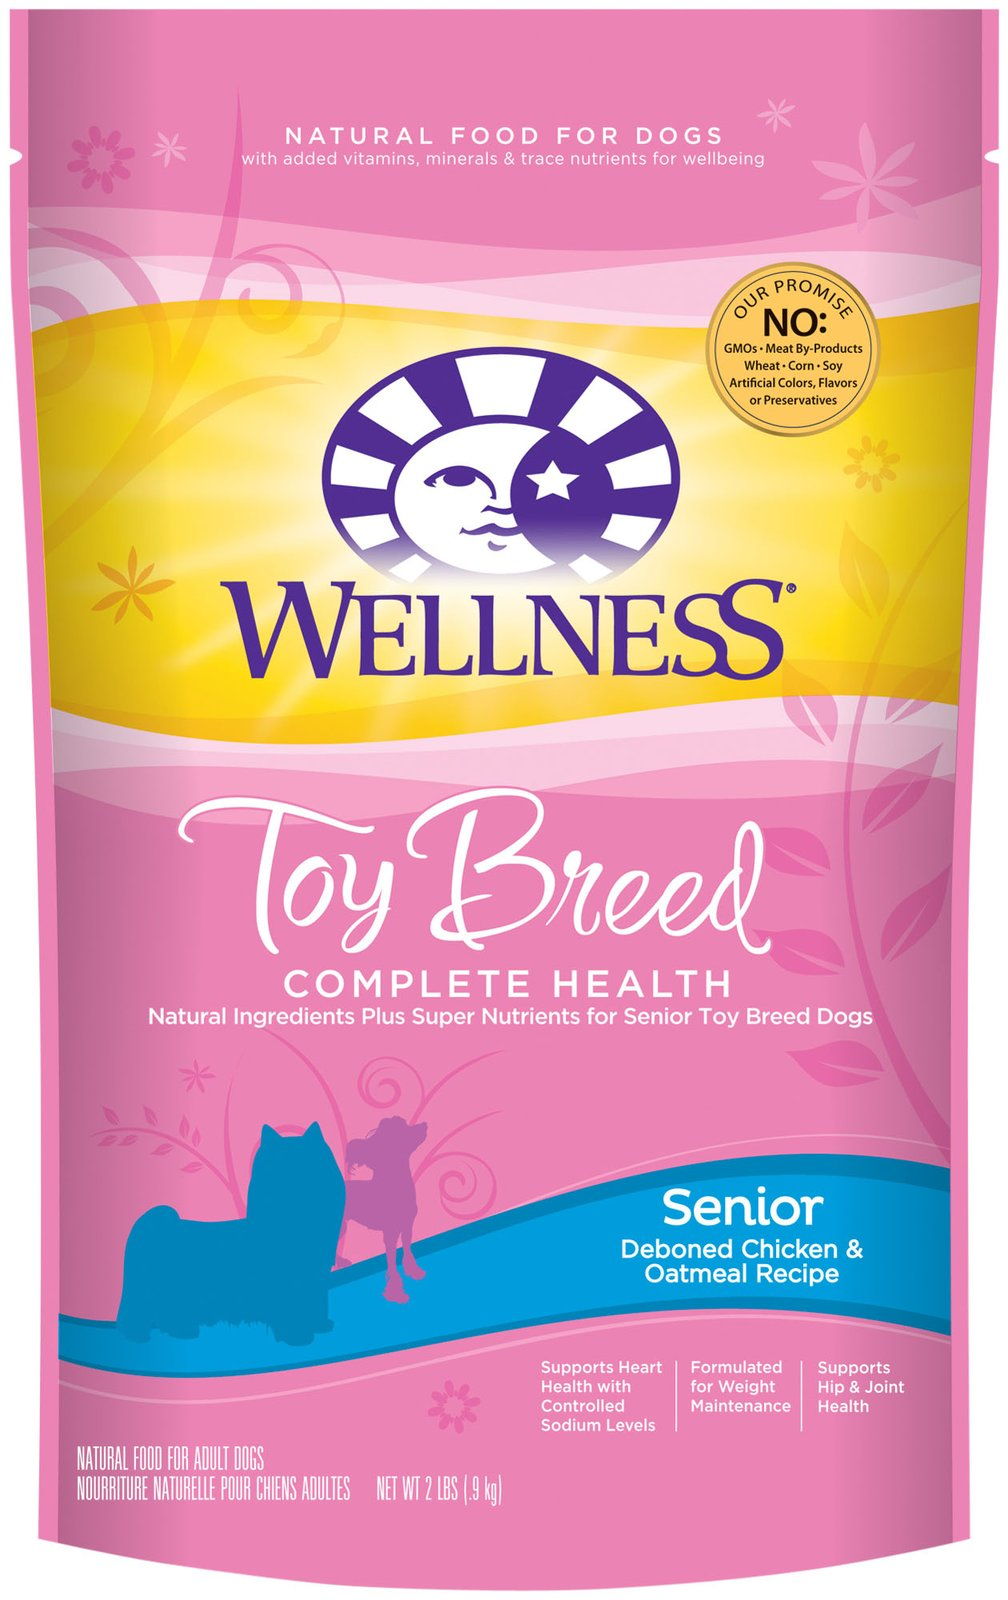 Toy Breed Complete Health Senior Deboned Chicken & Oatmeal Recipe